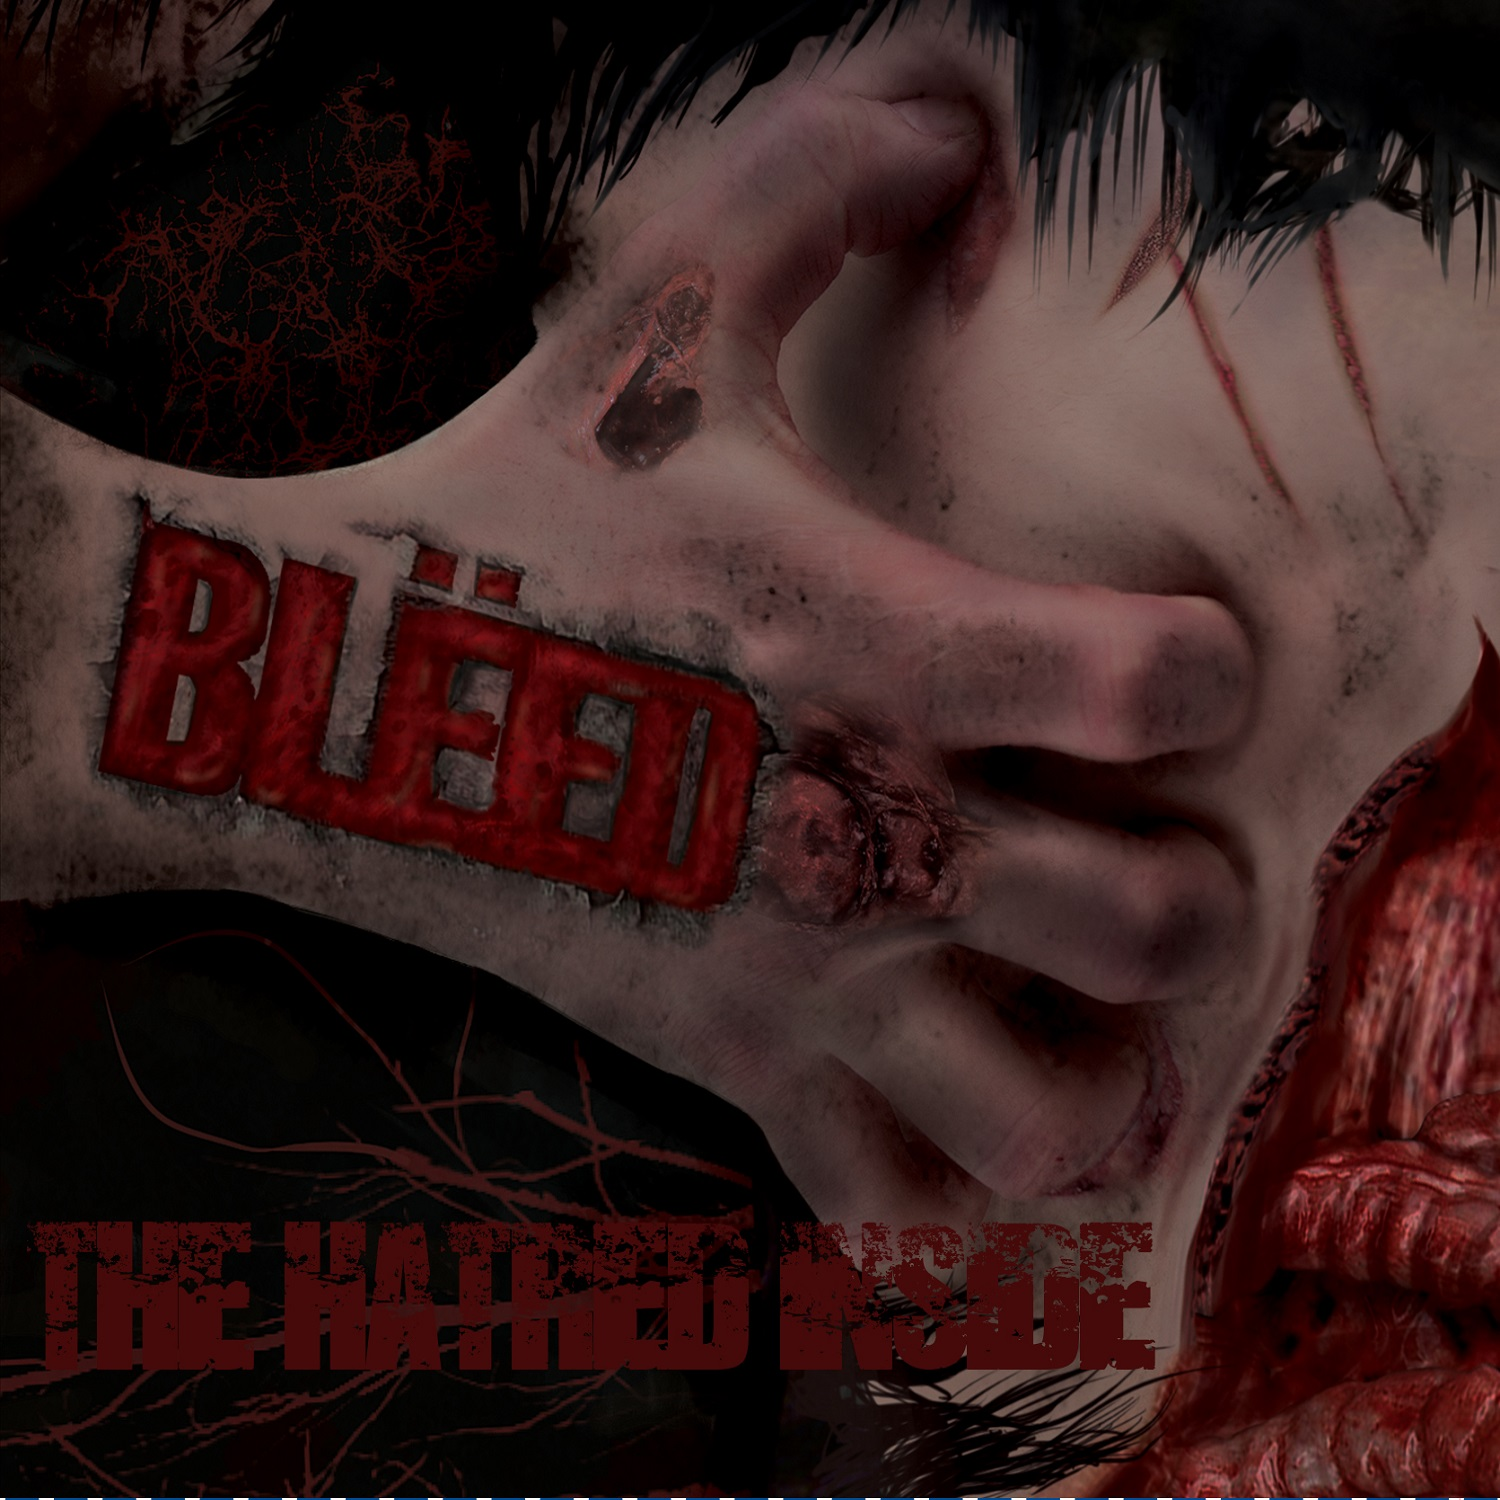 Blëed – The Hatred Inside Review